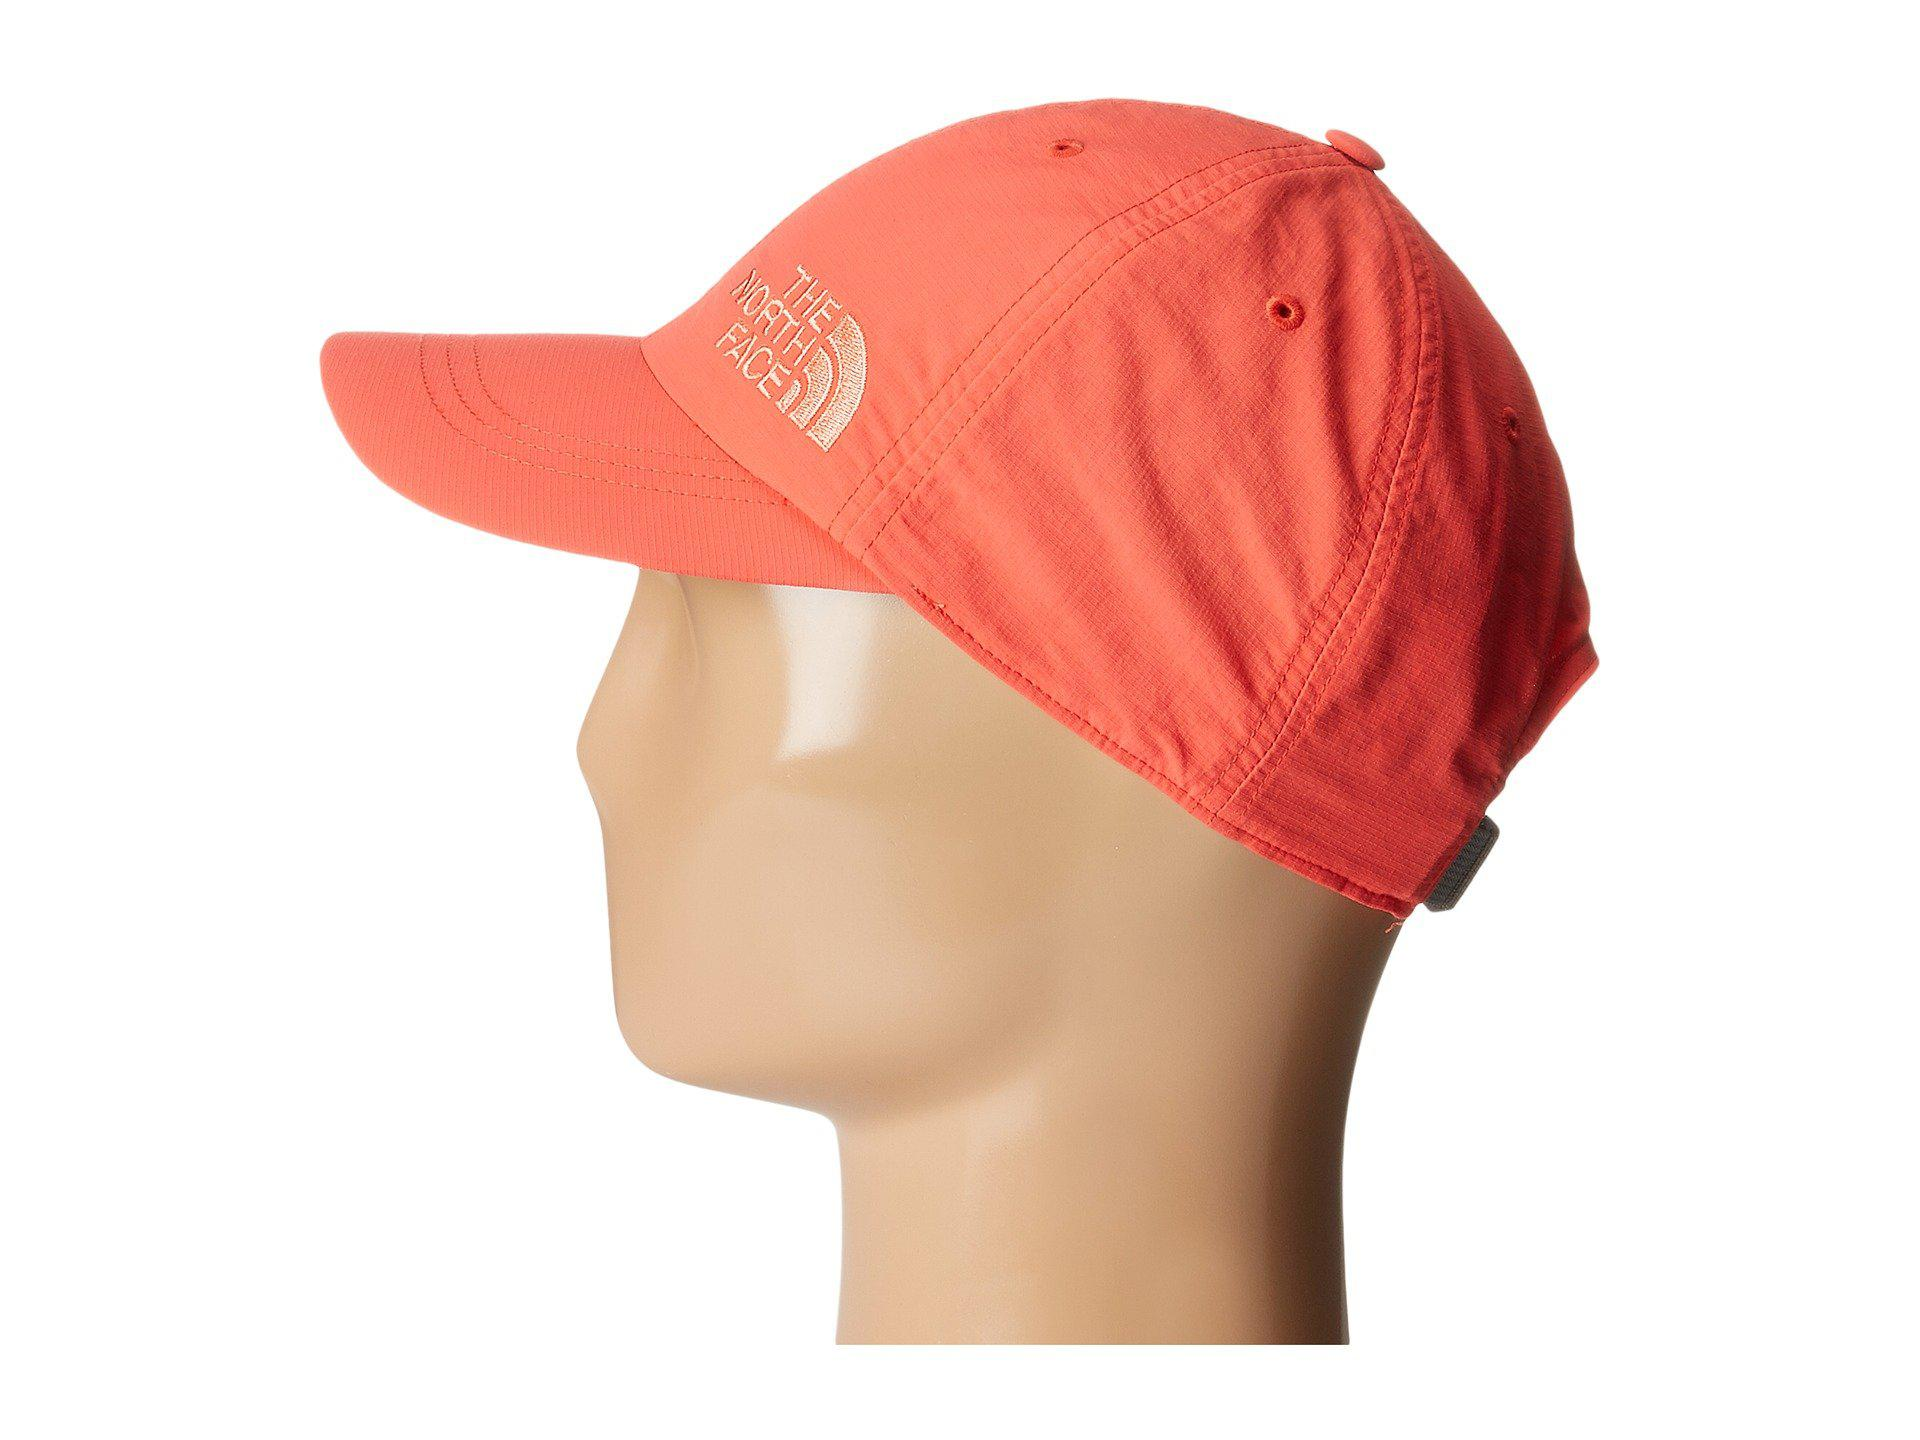 Lyst - The North Face Women s Horizon Ball Cap in Red ff9070f42e5